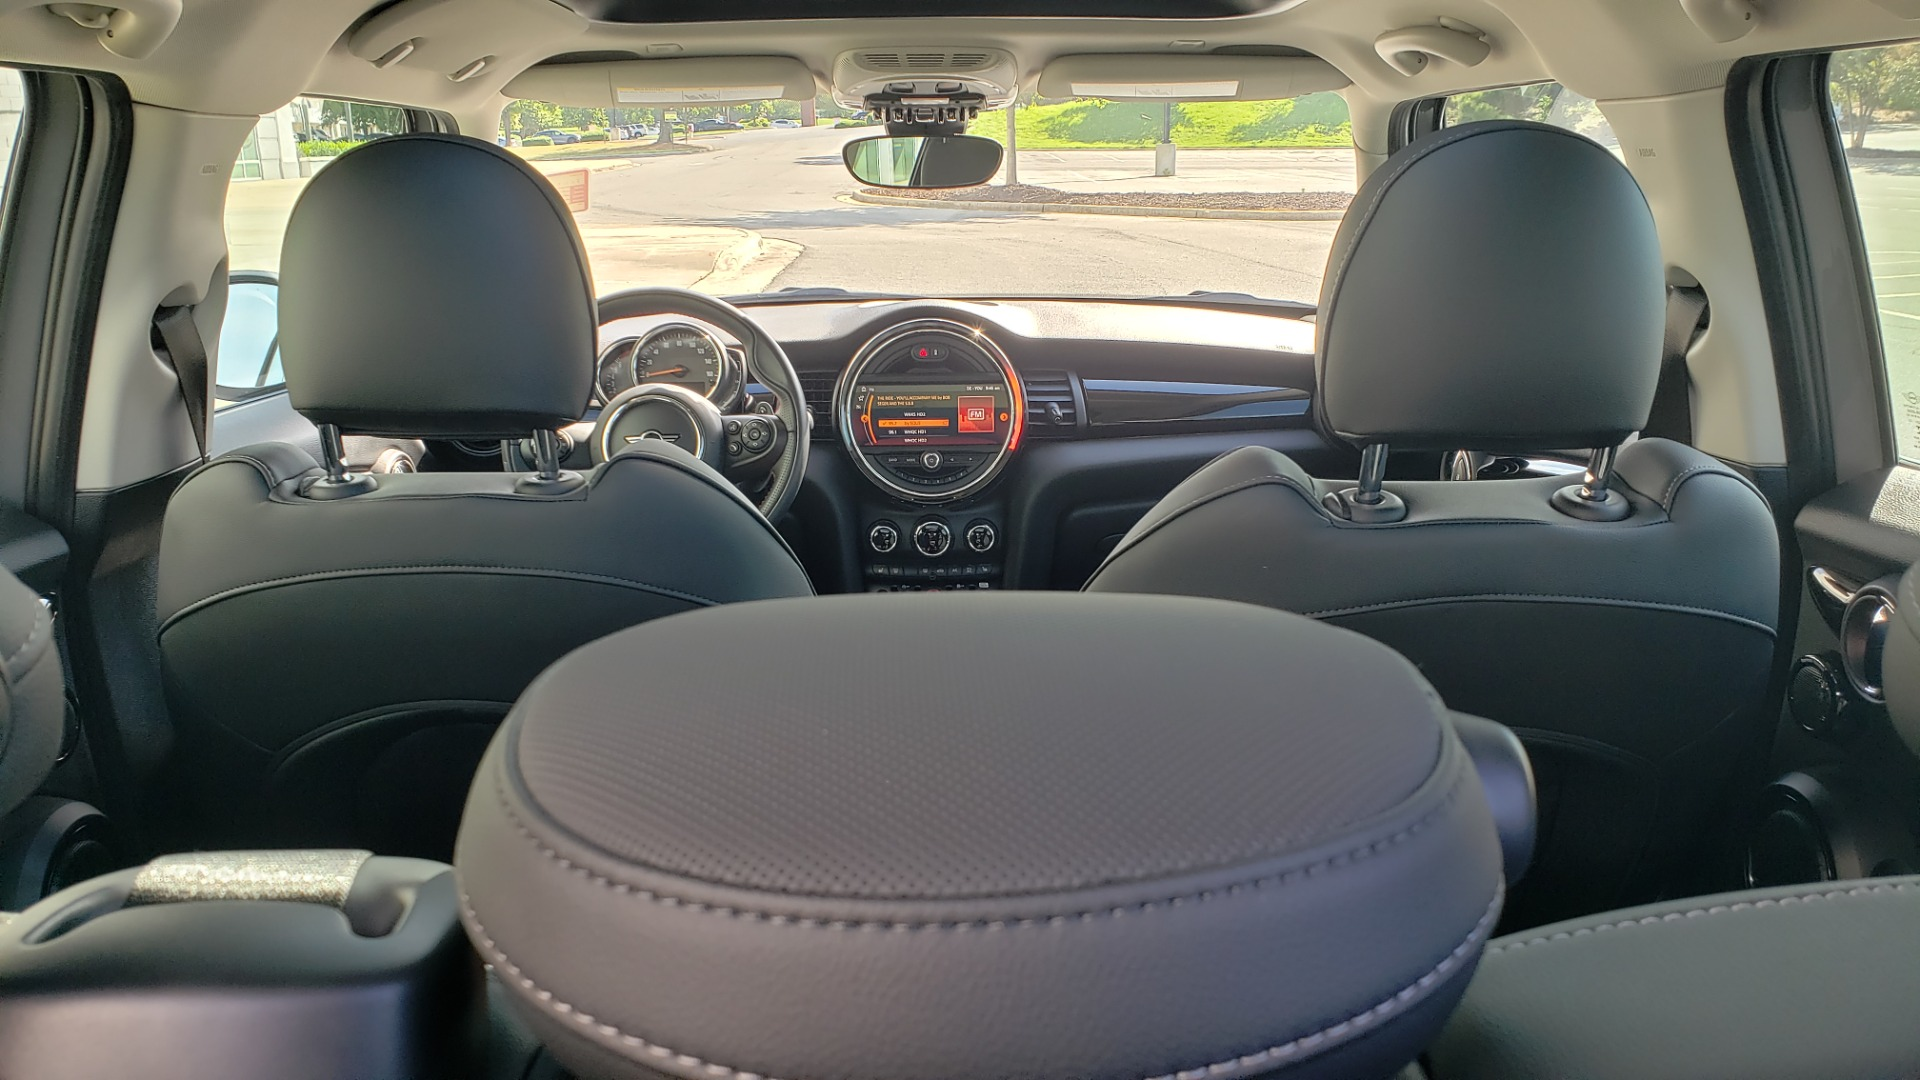 Used 2020 MINI HARDTOP 4 DOOR COOPER S / NAV / SUNROOF / AUTO / H/K SND / REARVIEW for sale $28,495 at Formula Imports in Charlotte NC 28227 22